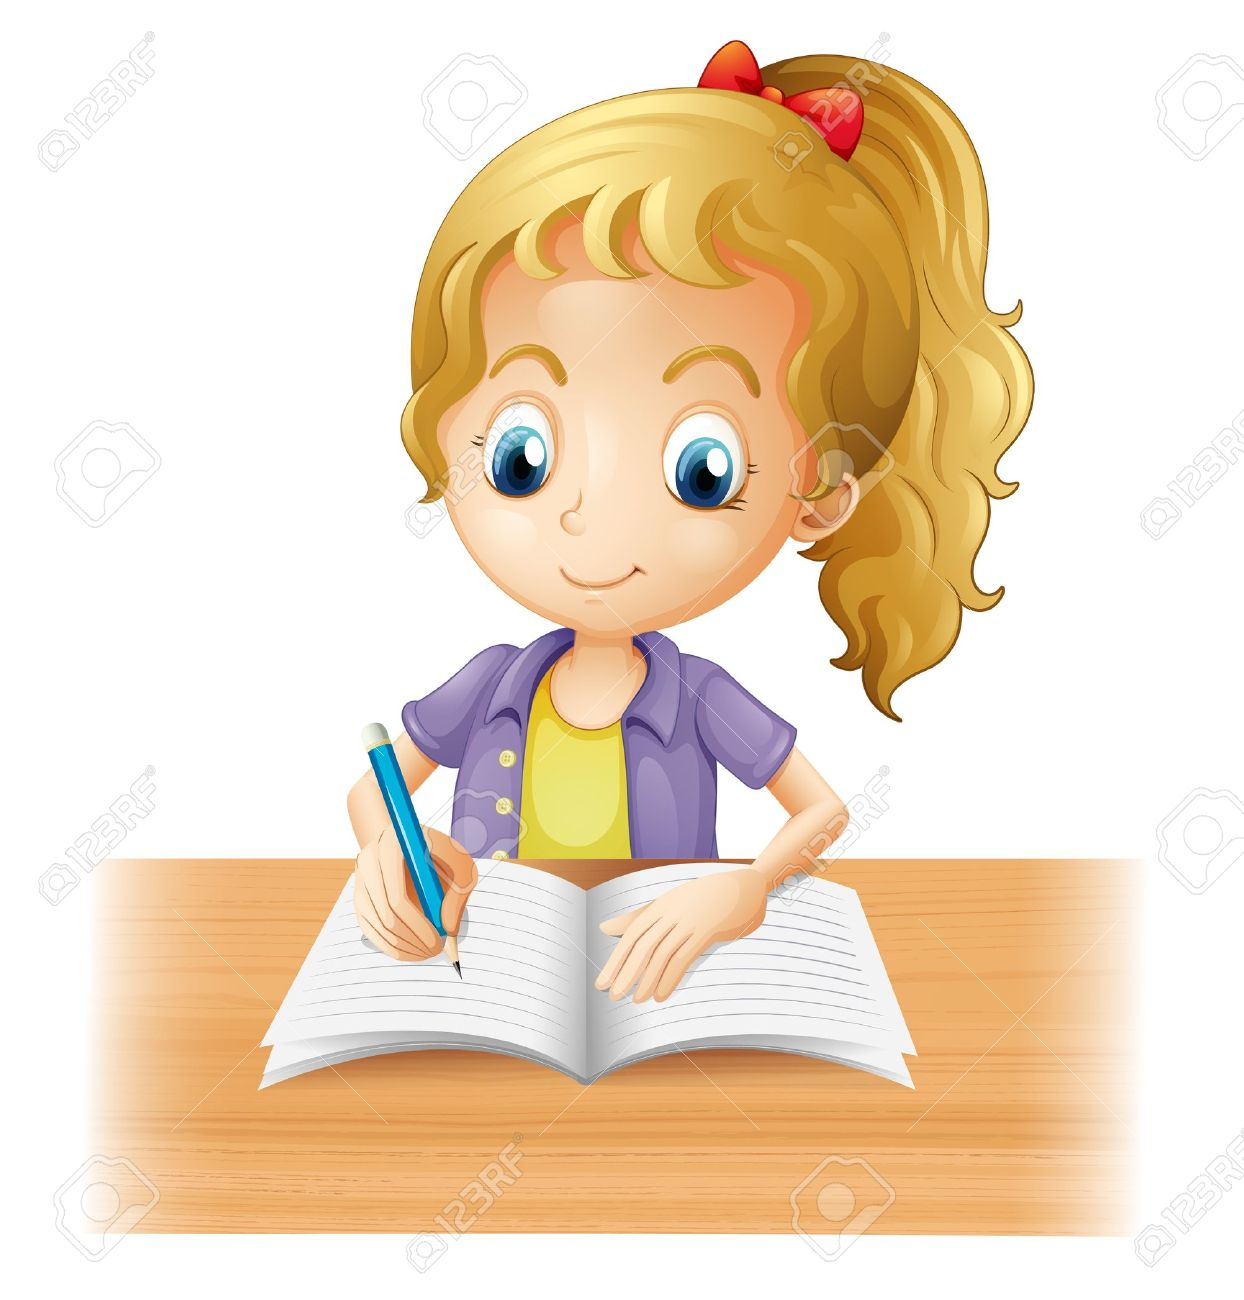 Clipart Of A Girl Writing.